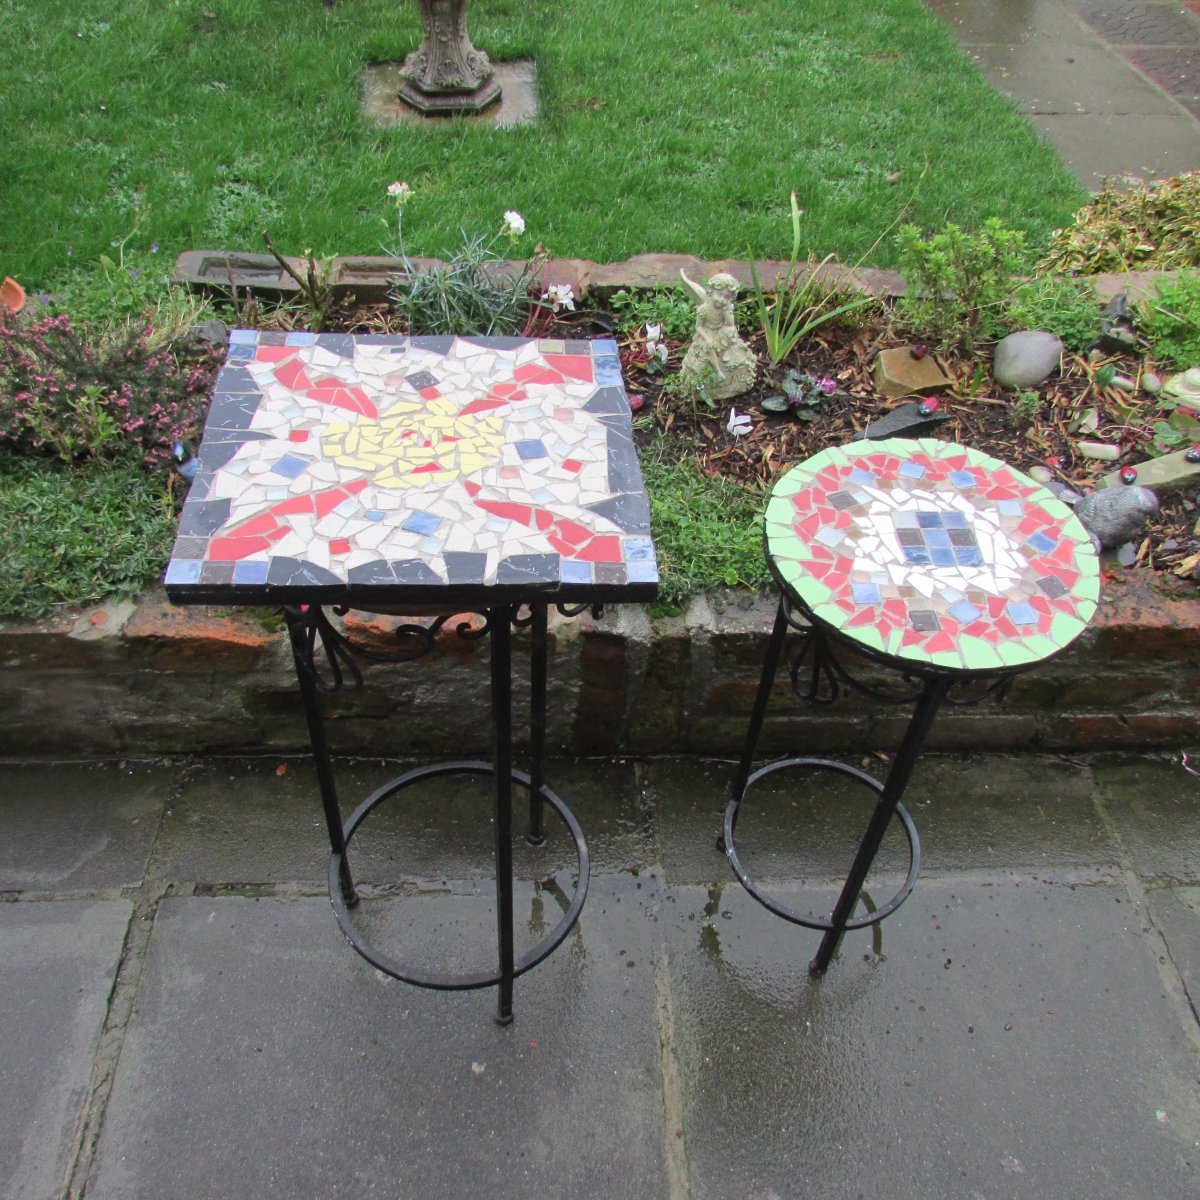 How to Create a Mosaic Design for a Garden Table Top